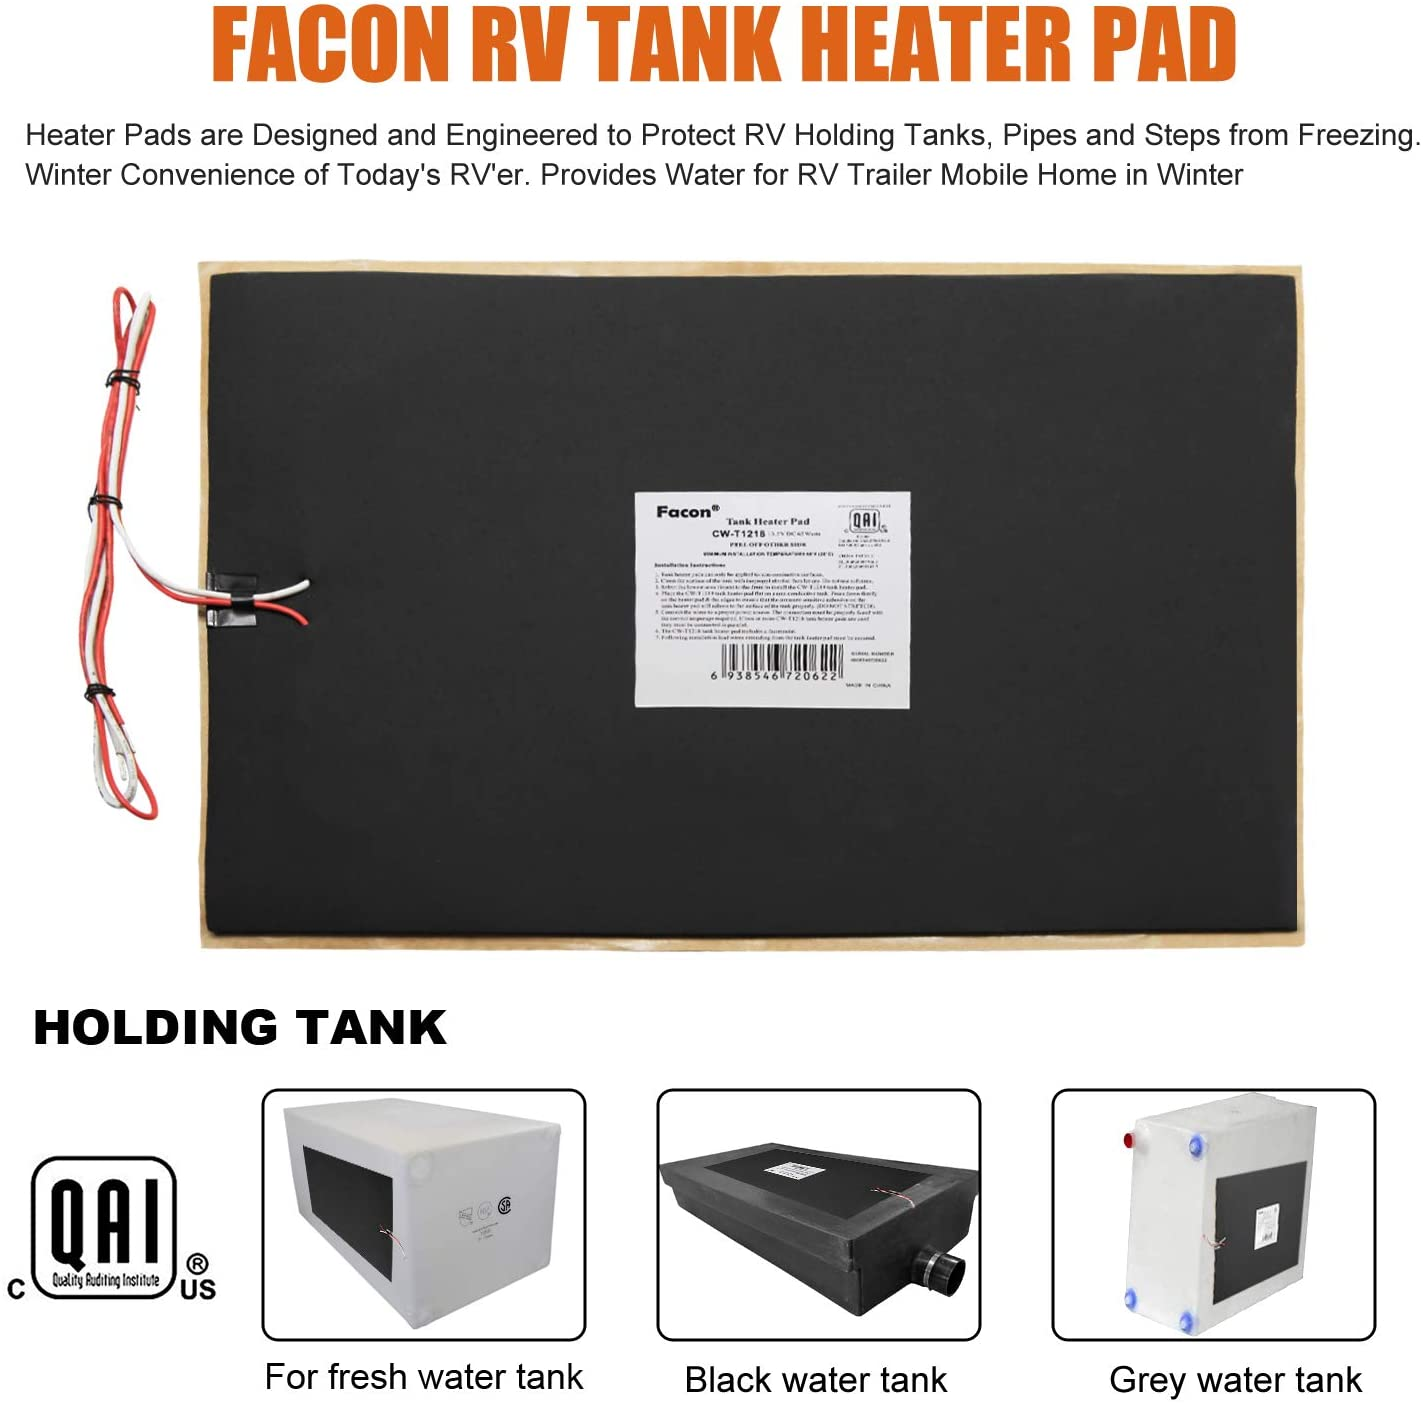 Holding Tank with Optional Toggle Switch Up to 20 to 40 Gallons Fresh Water Grey Water RV Tank Heater Pad 8 x 25 1 Pad, No Toggle Switch 120V